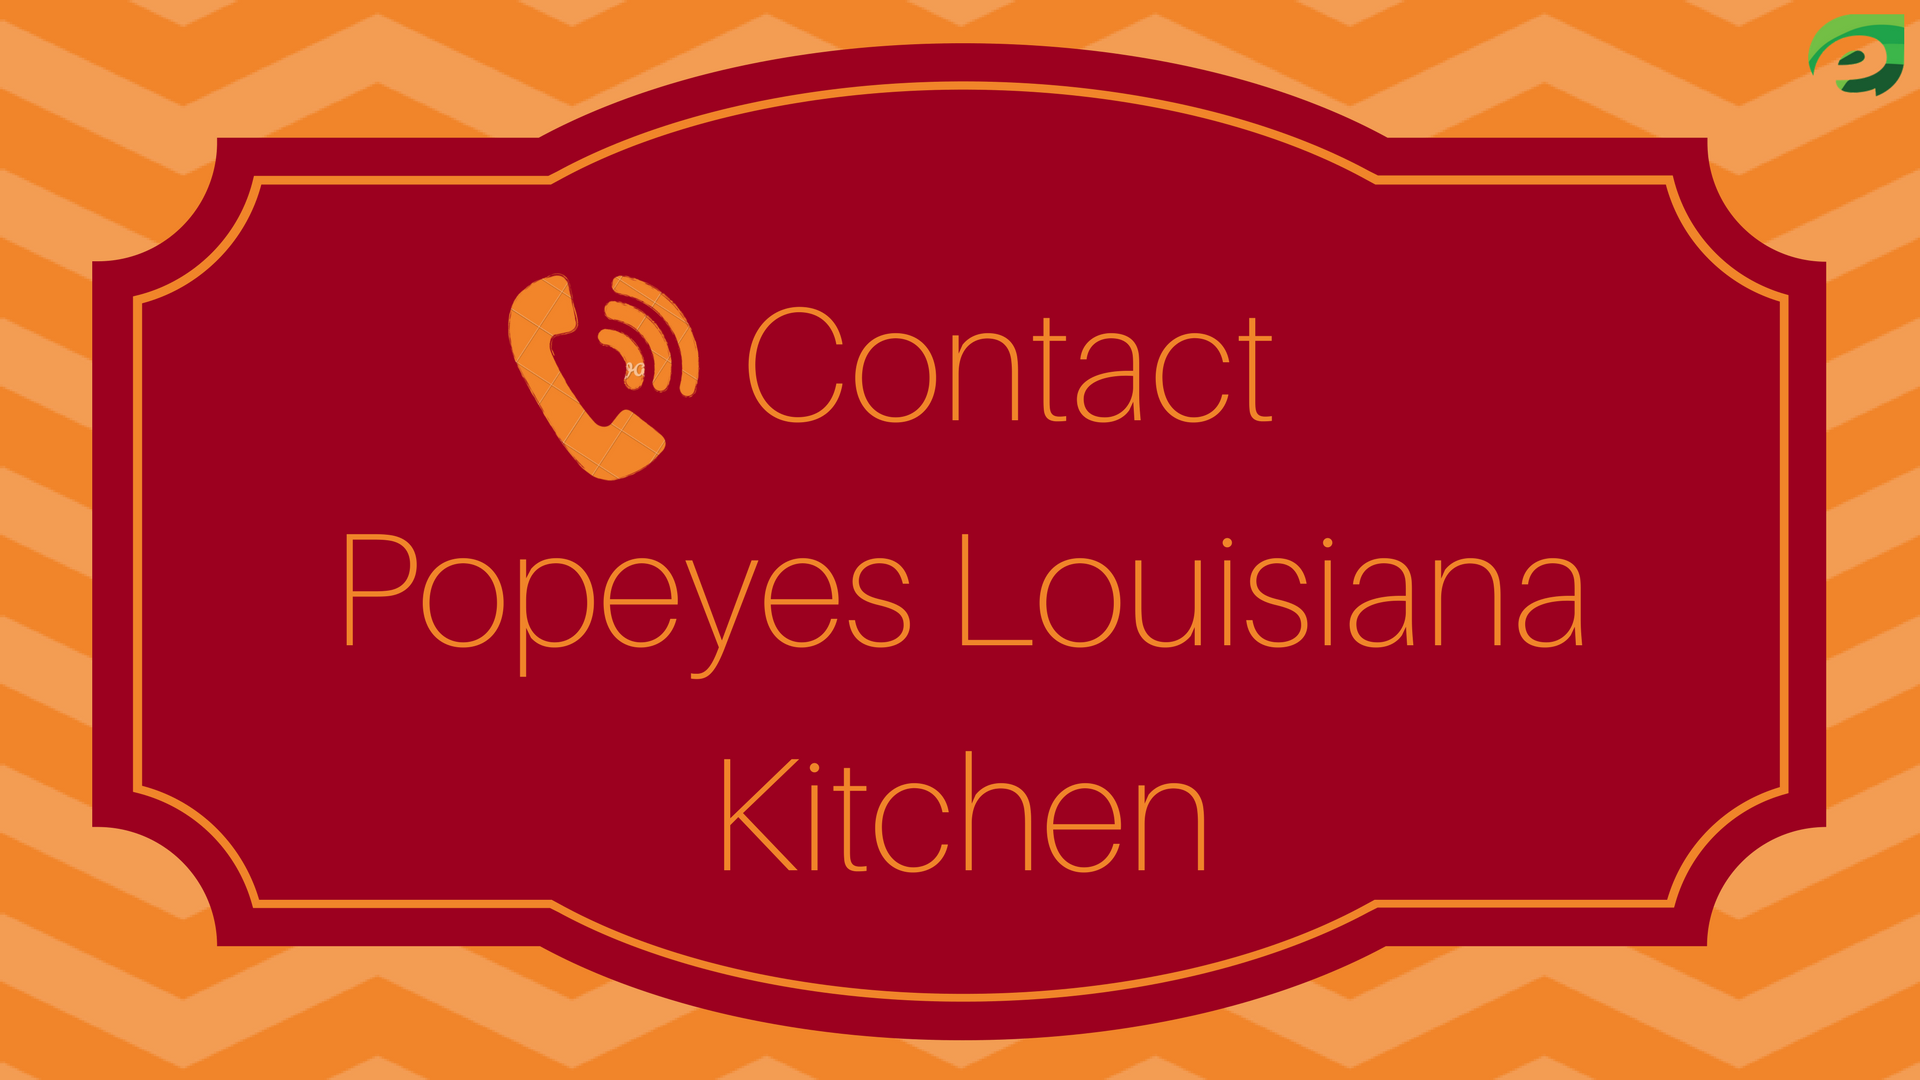 Tell popeyes - contact